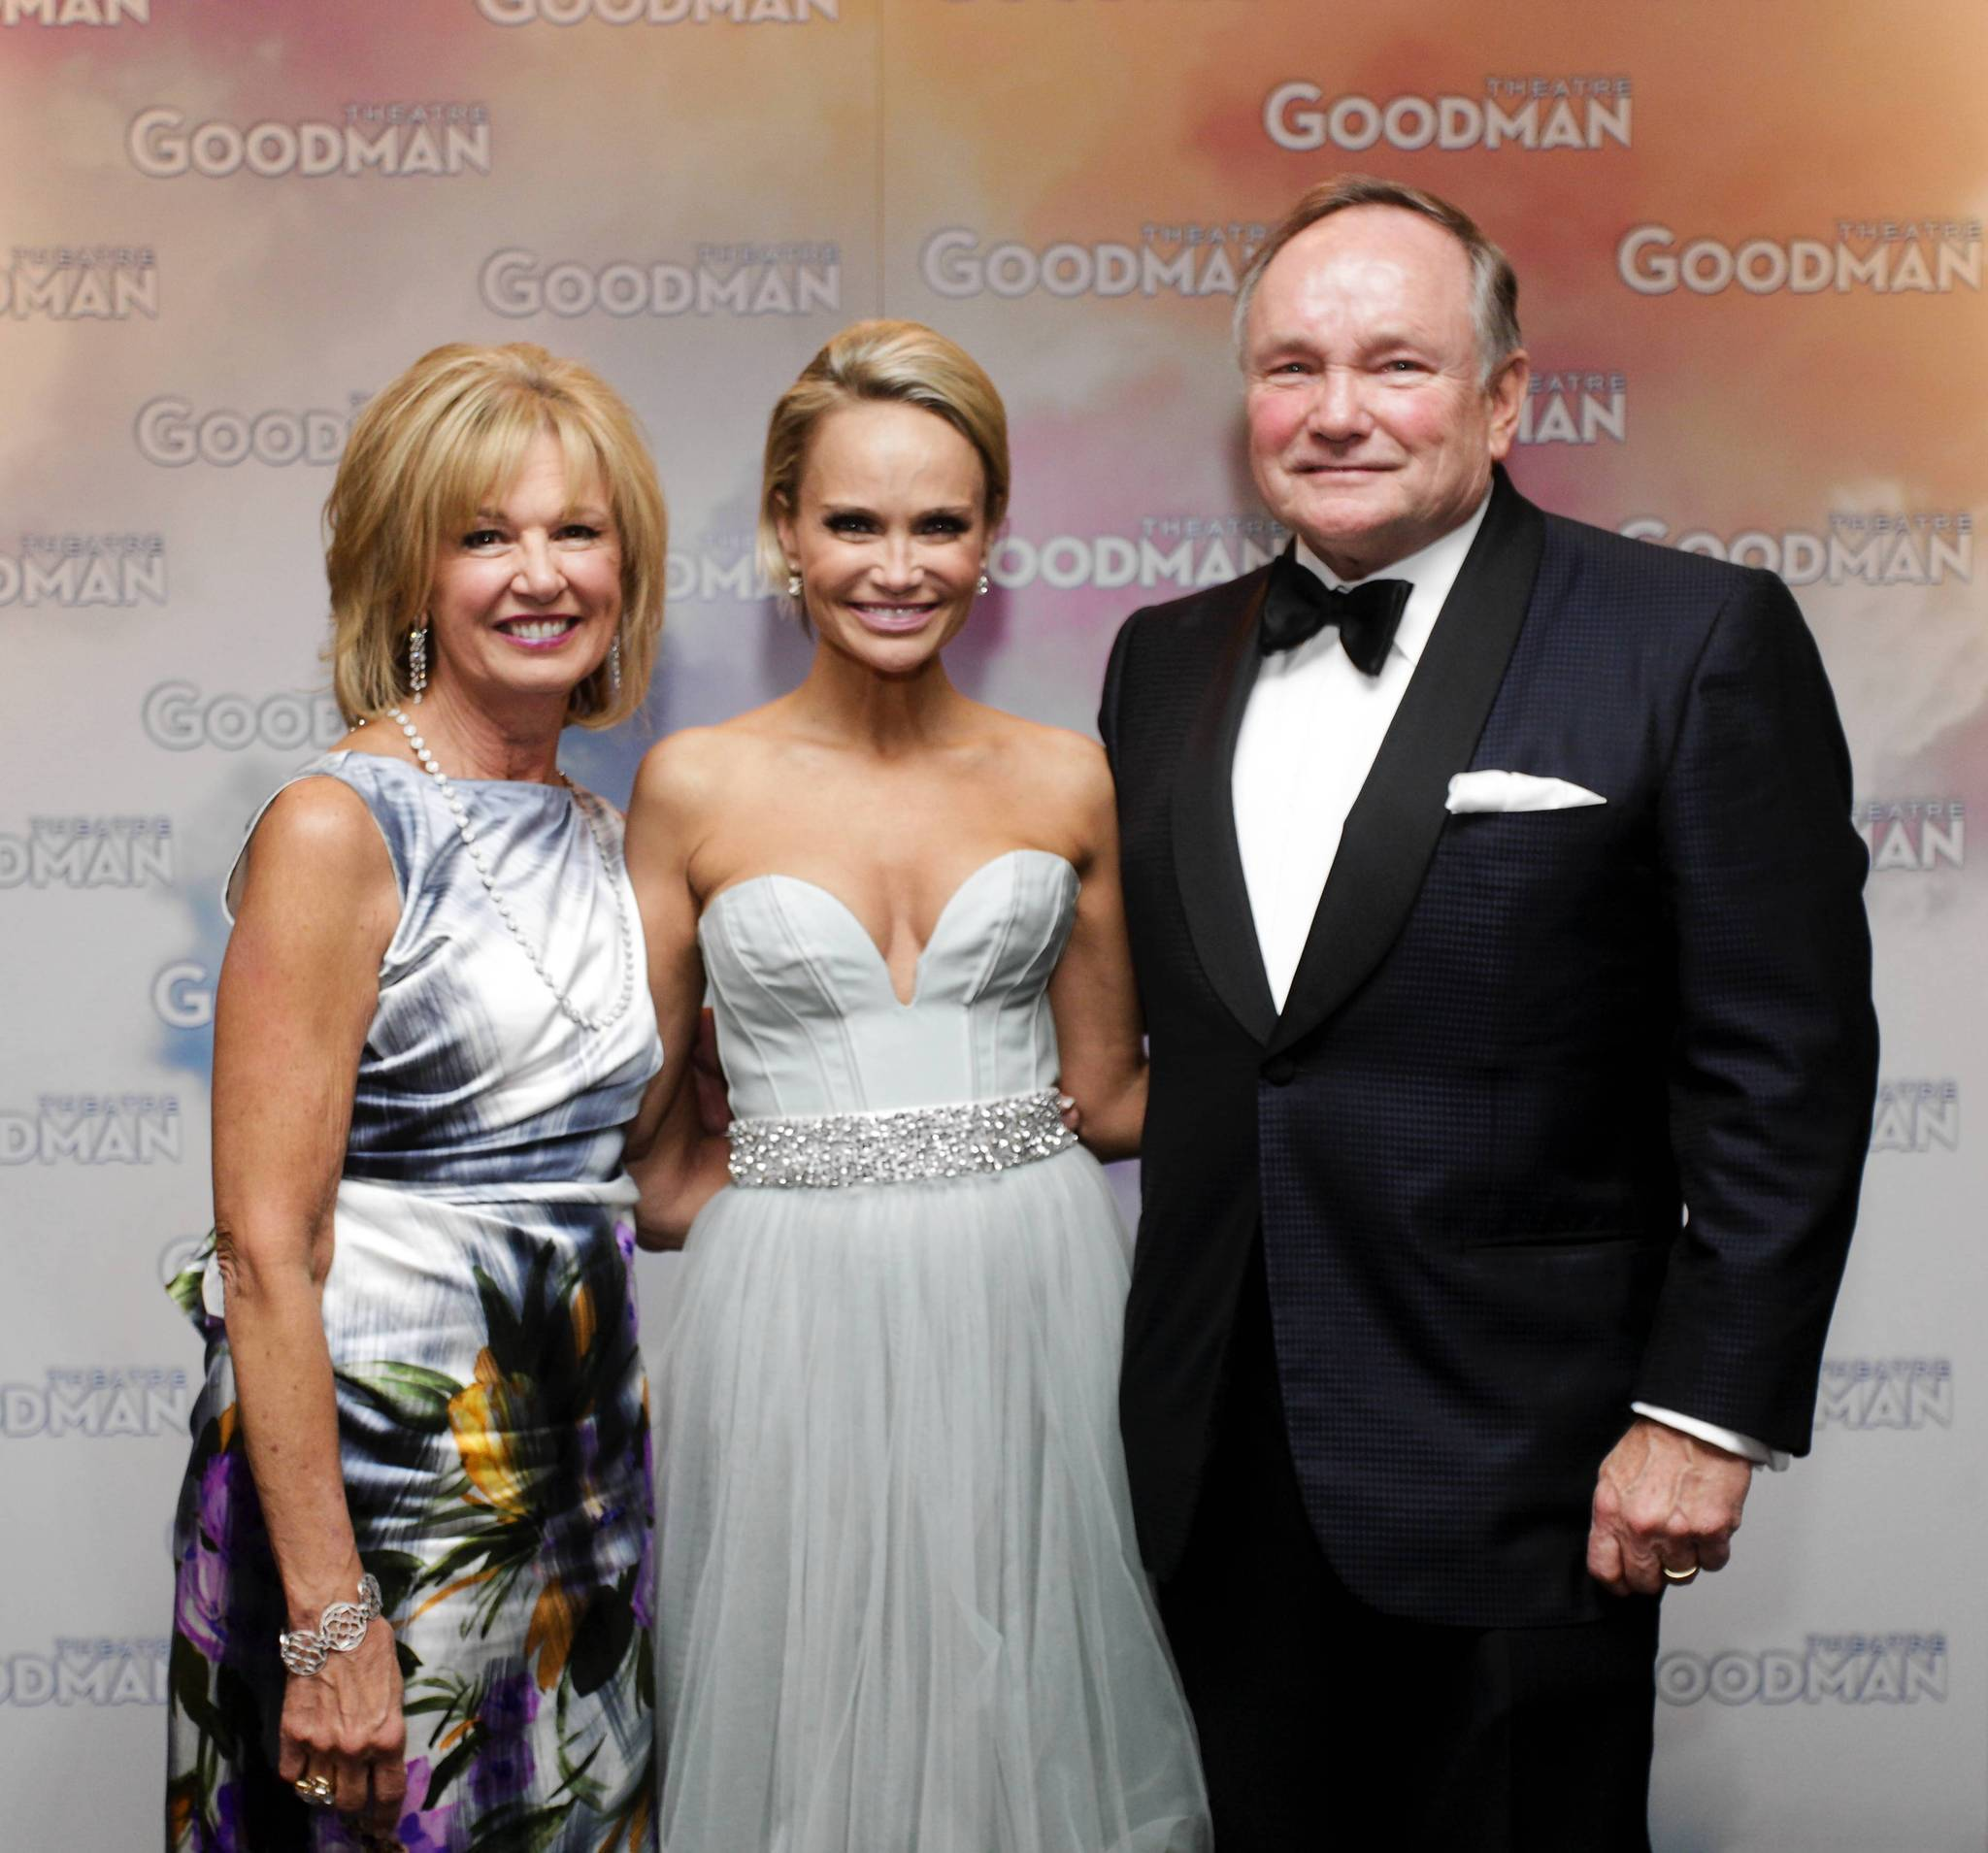 Joan Clifford, Kristin Chenoweth and Robert Clifford during the Goodman Theatre Gala at the Hilton Hotel.